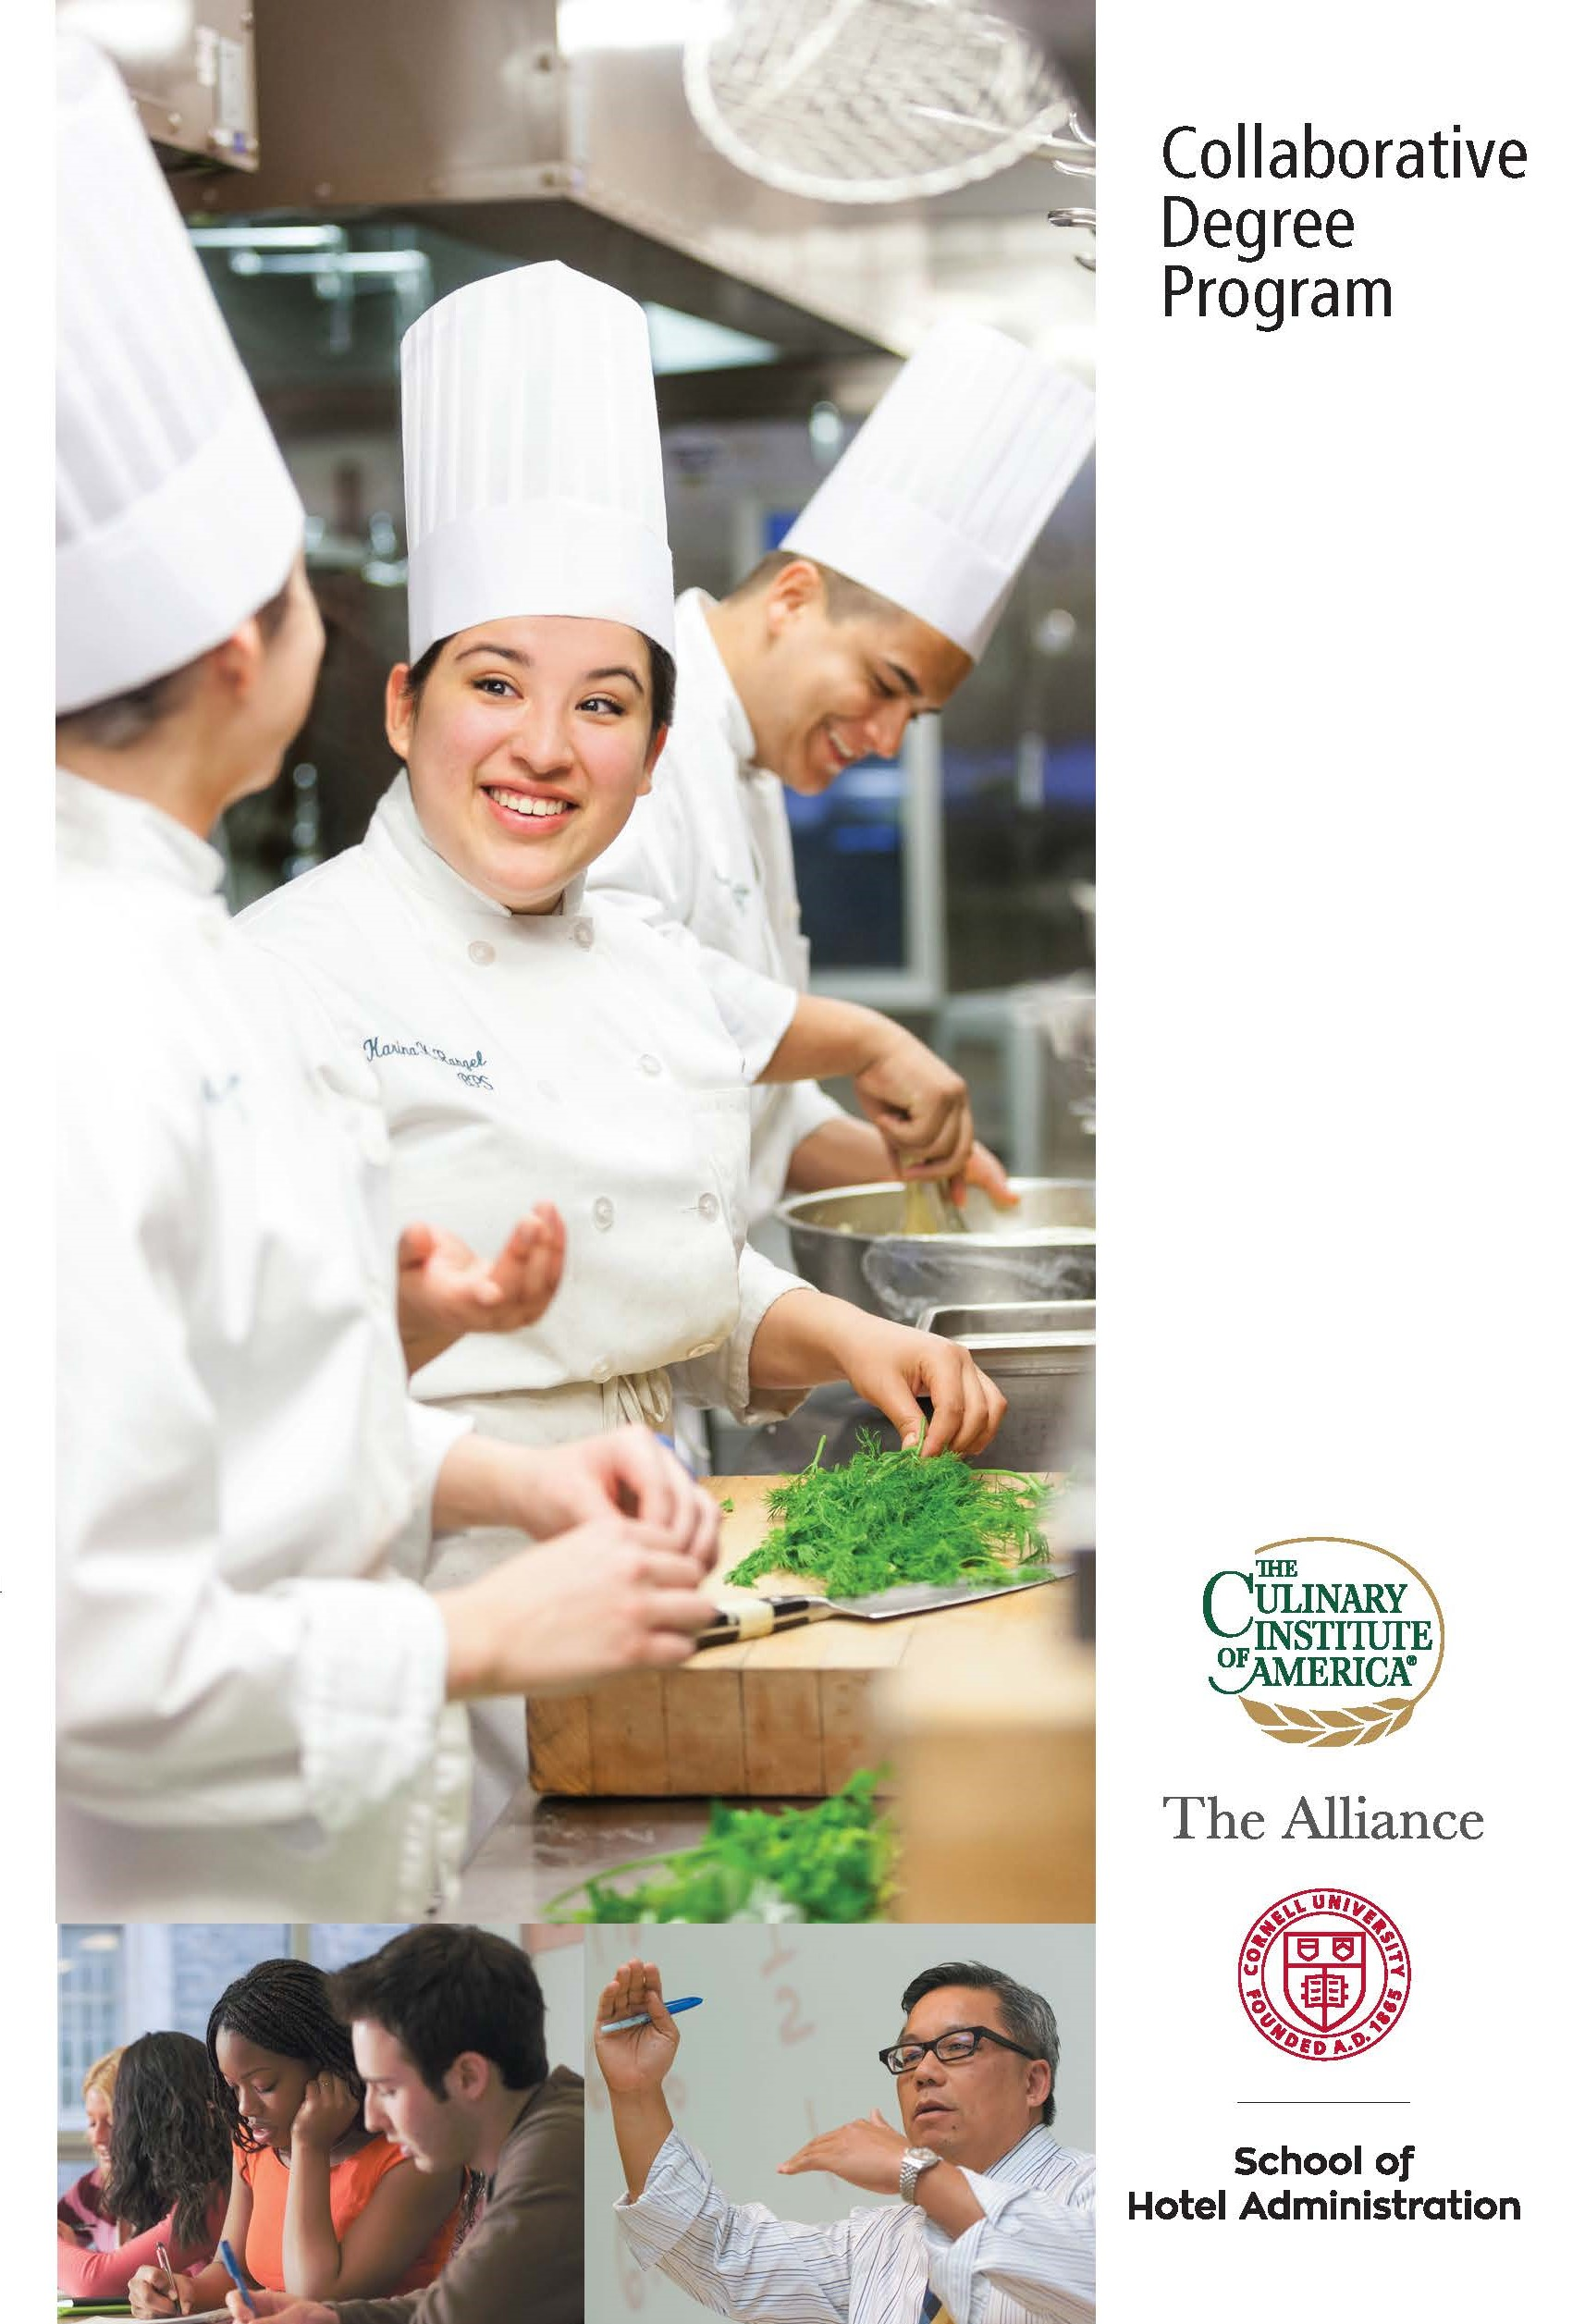 informative essays about culinary Cultural studies essays - culture, food and eating cultural 2001, isthere a culinary skills transition data and debate from the uk about changes in.